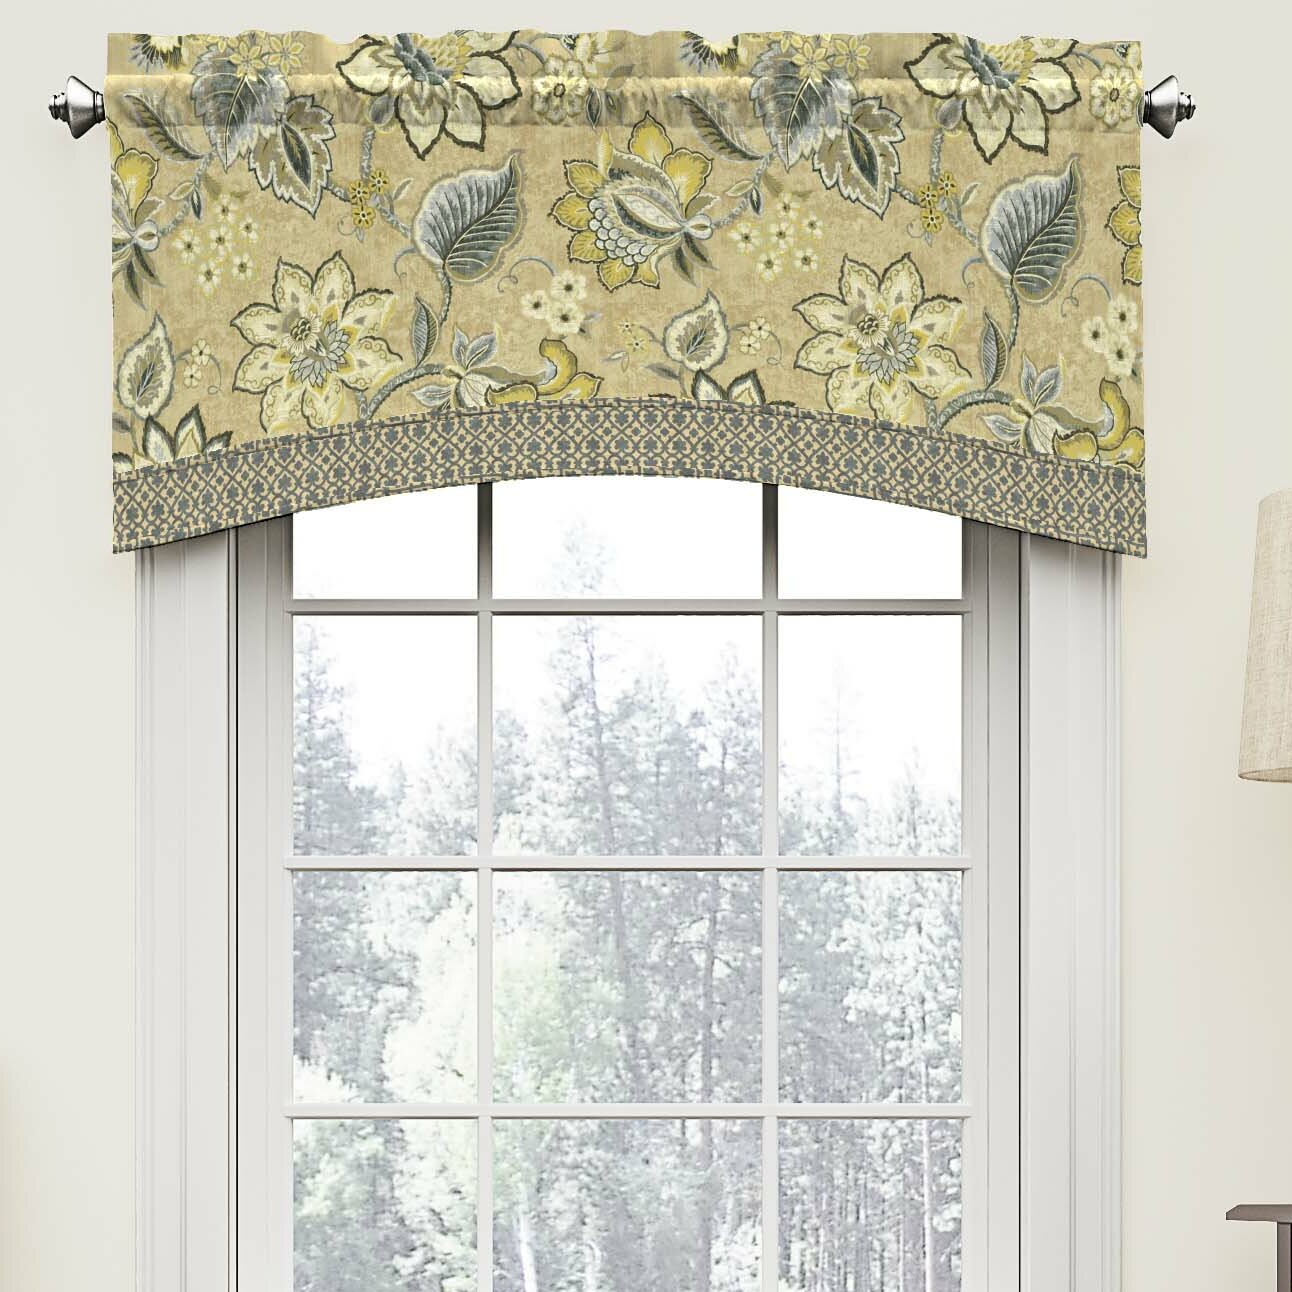 Waverly Brighton Blossom 52 Arched Curtain Valance Reviews Wayfair